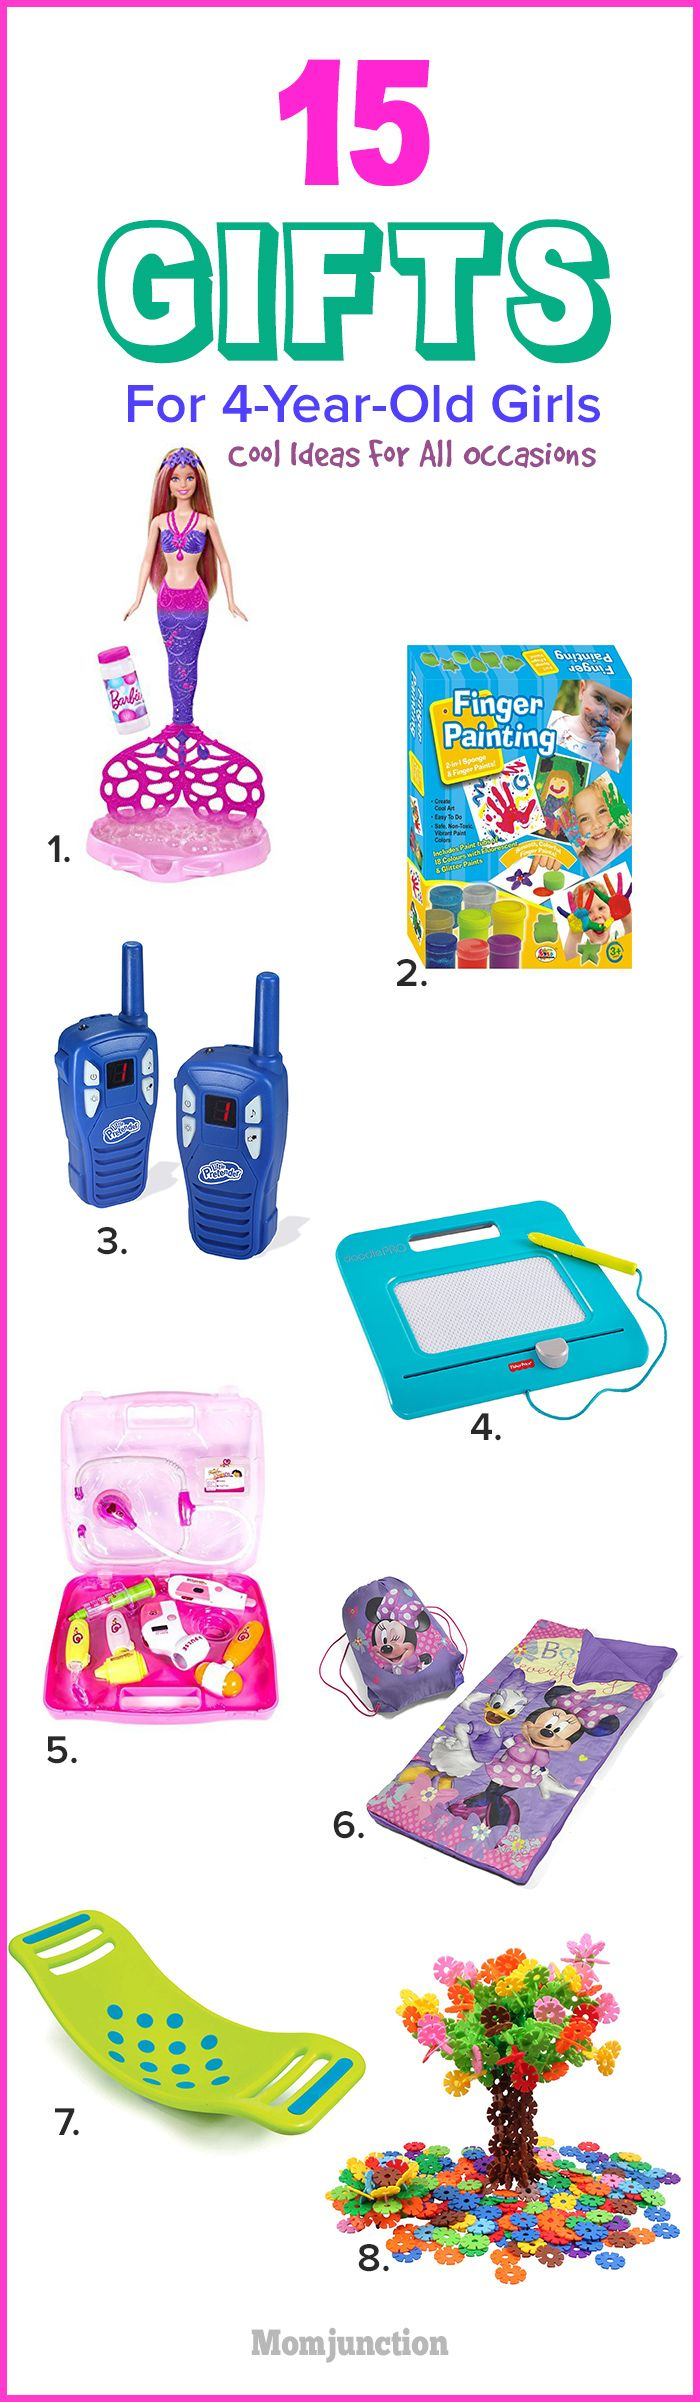 15 Best Gifts For 4-Year-Old Girls: Cool Ideas For All Occasions